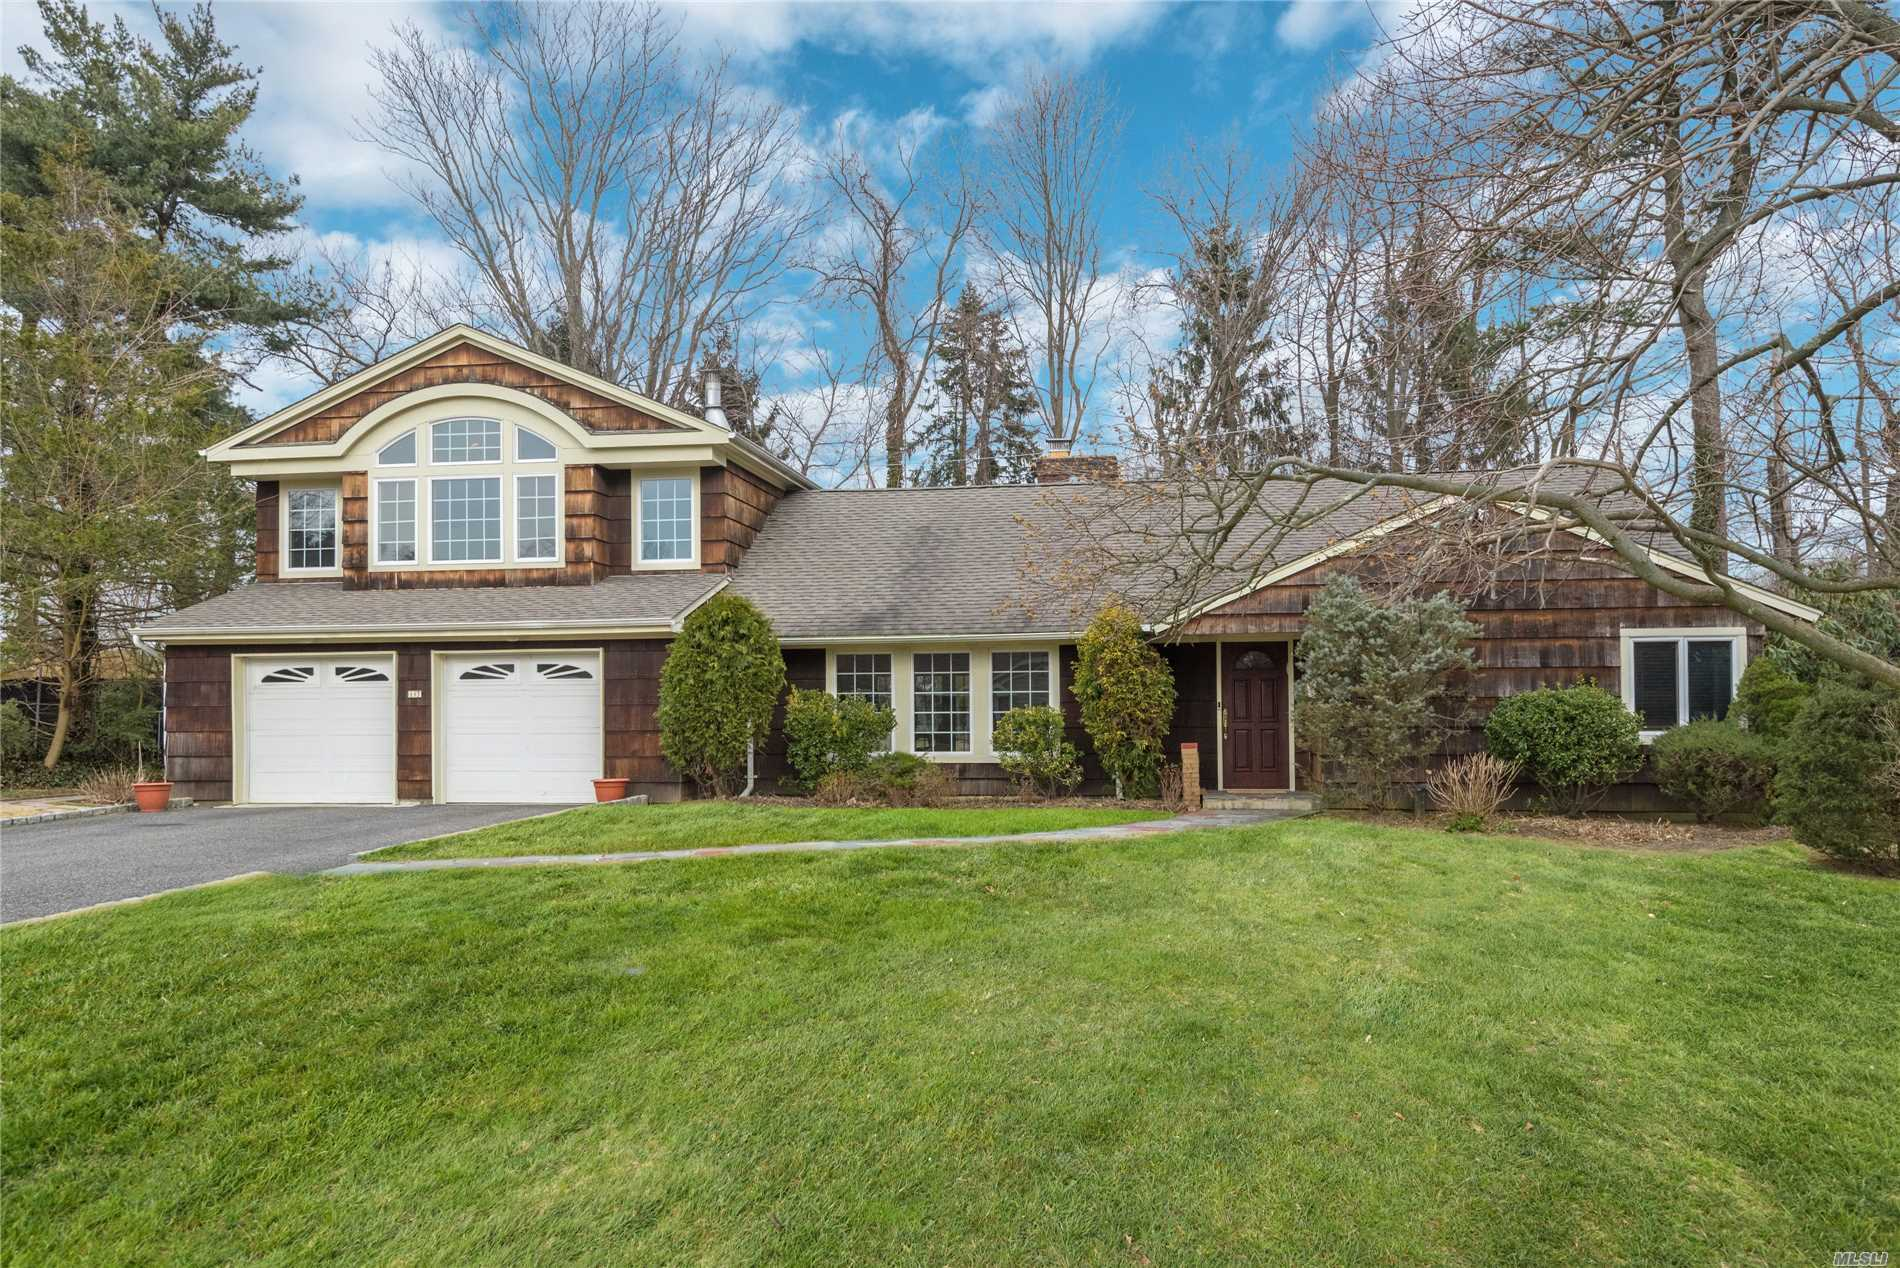 New To The Market. Totally Renovated Open & Airy 4 Bedroom 3 Full Bath Expanded Ranch. New Kitchen With Corian Countertops, Stainless Steel Applncs & Radiant Heat. Lr With Vaulted Ceilings, Oversized Family Room/Den (Which Could Be Easily Converted To 2 Brs & Plumbing For Bathroom Is Accessible. 2 Masters On The Main. Full Size Attic With Wood Floors. Flat Property Overlooking Golf Course.